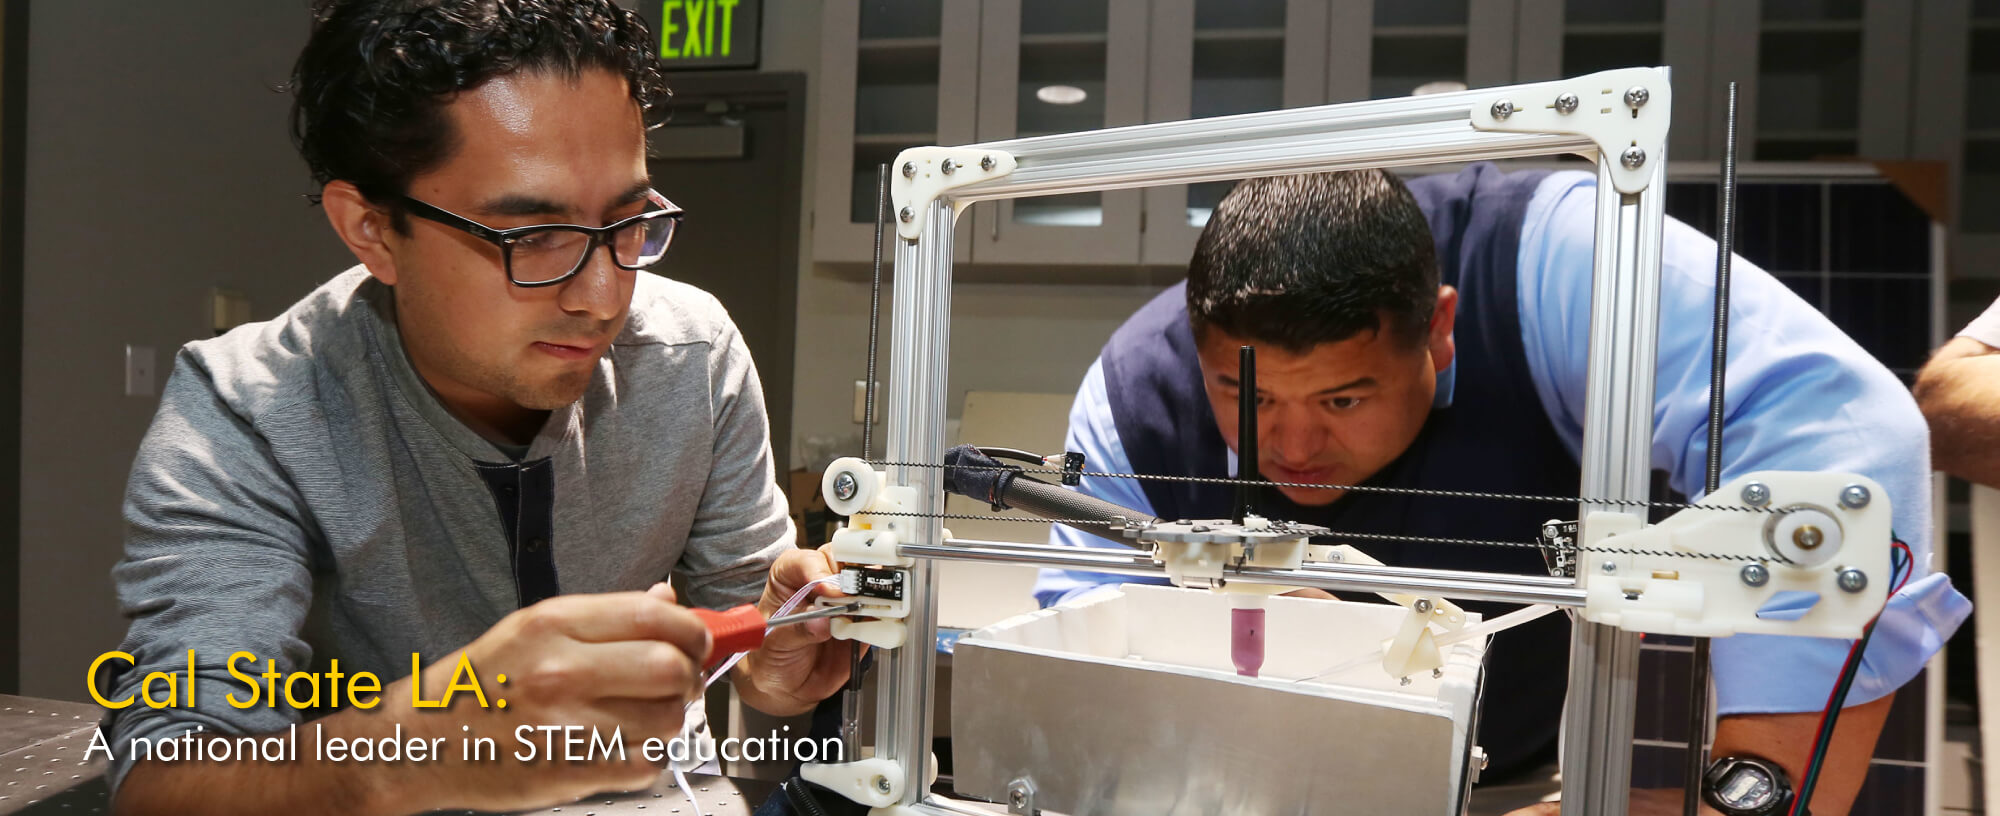 Cal State LA top ranked STEM programs